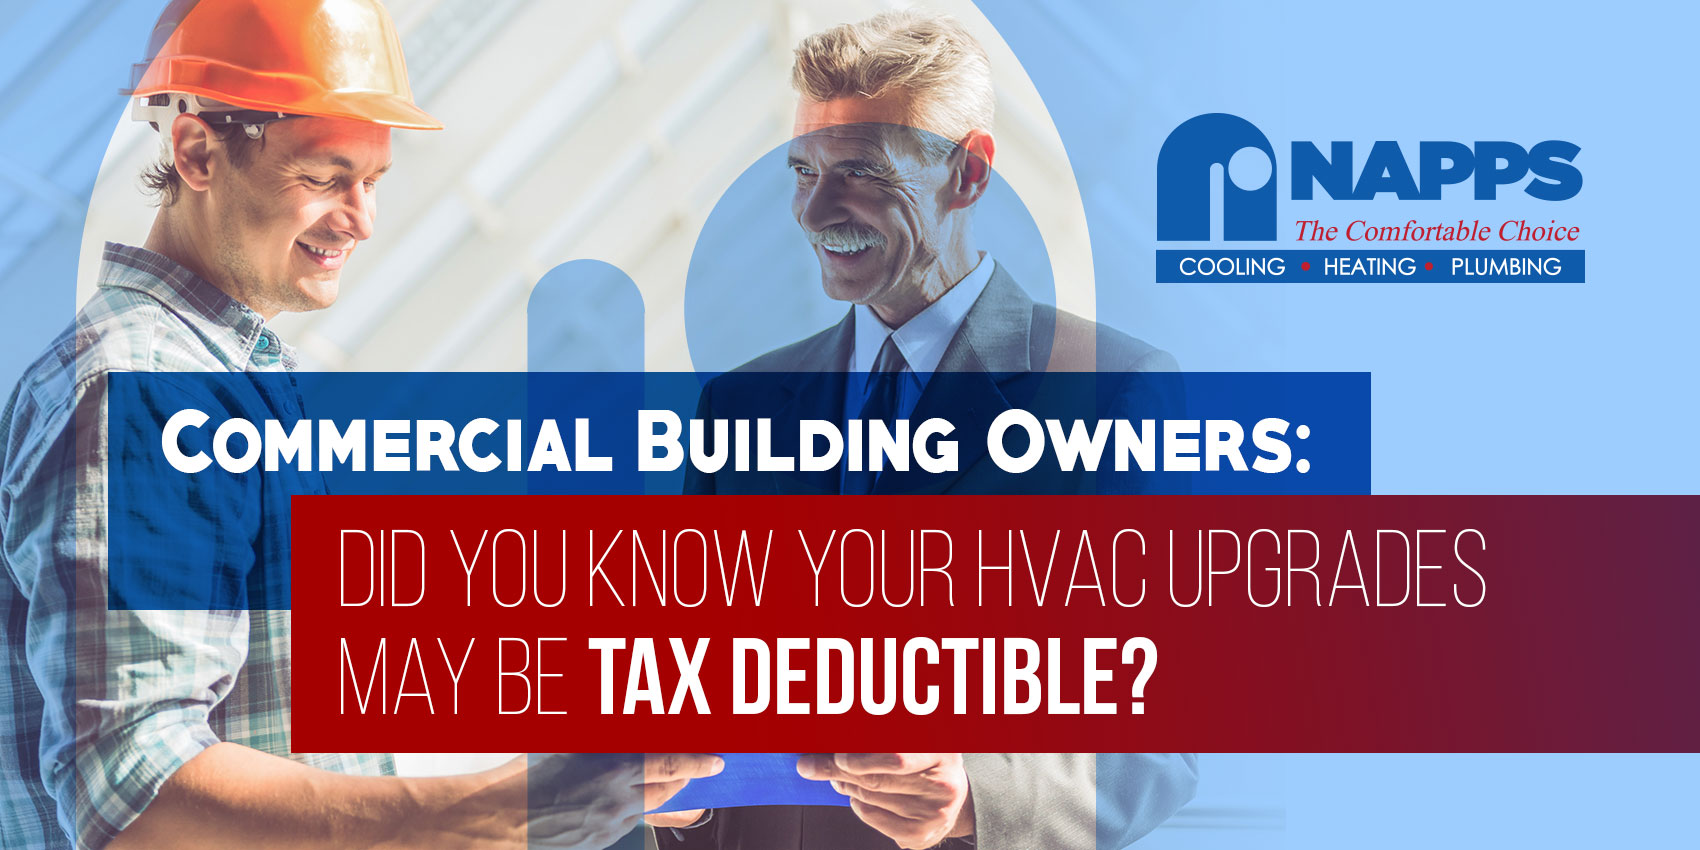 Commercial Building Owners: Did You Know Your HVAC Upgrades May Be Tax Deductible?